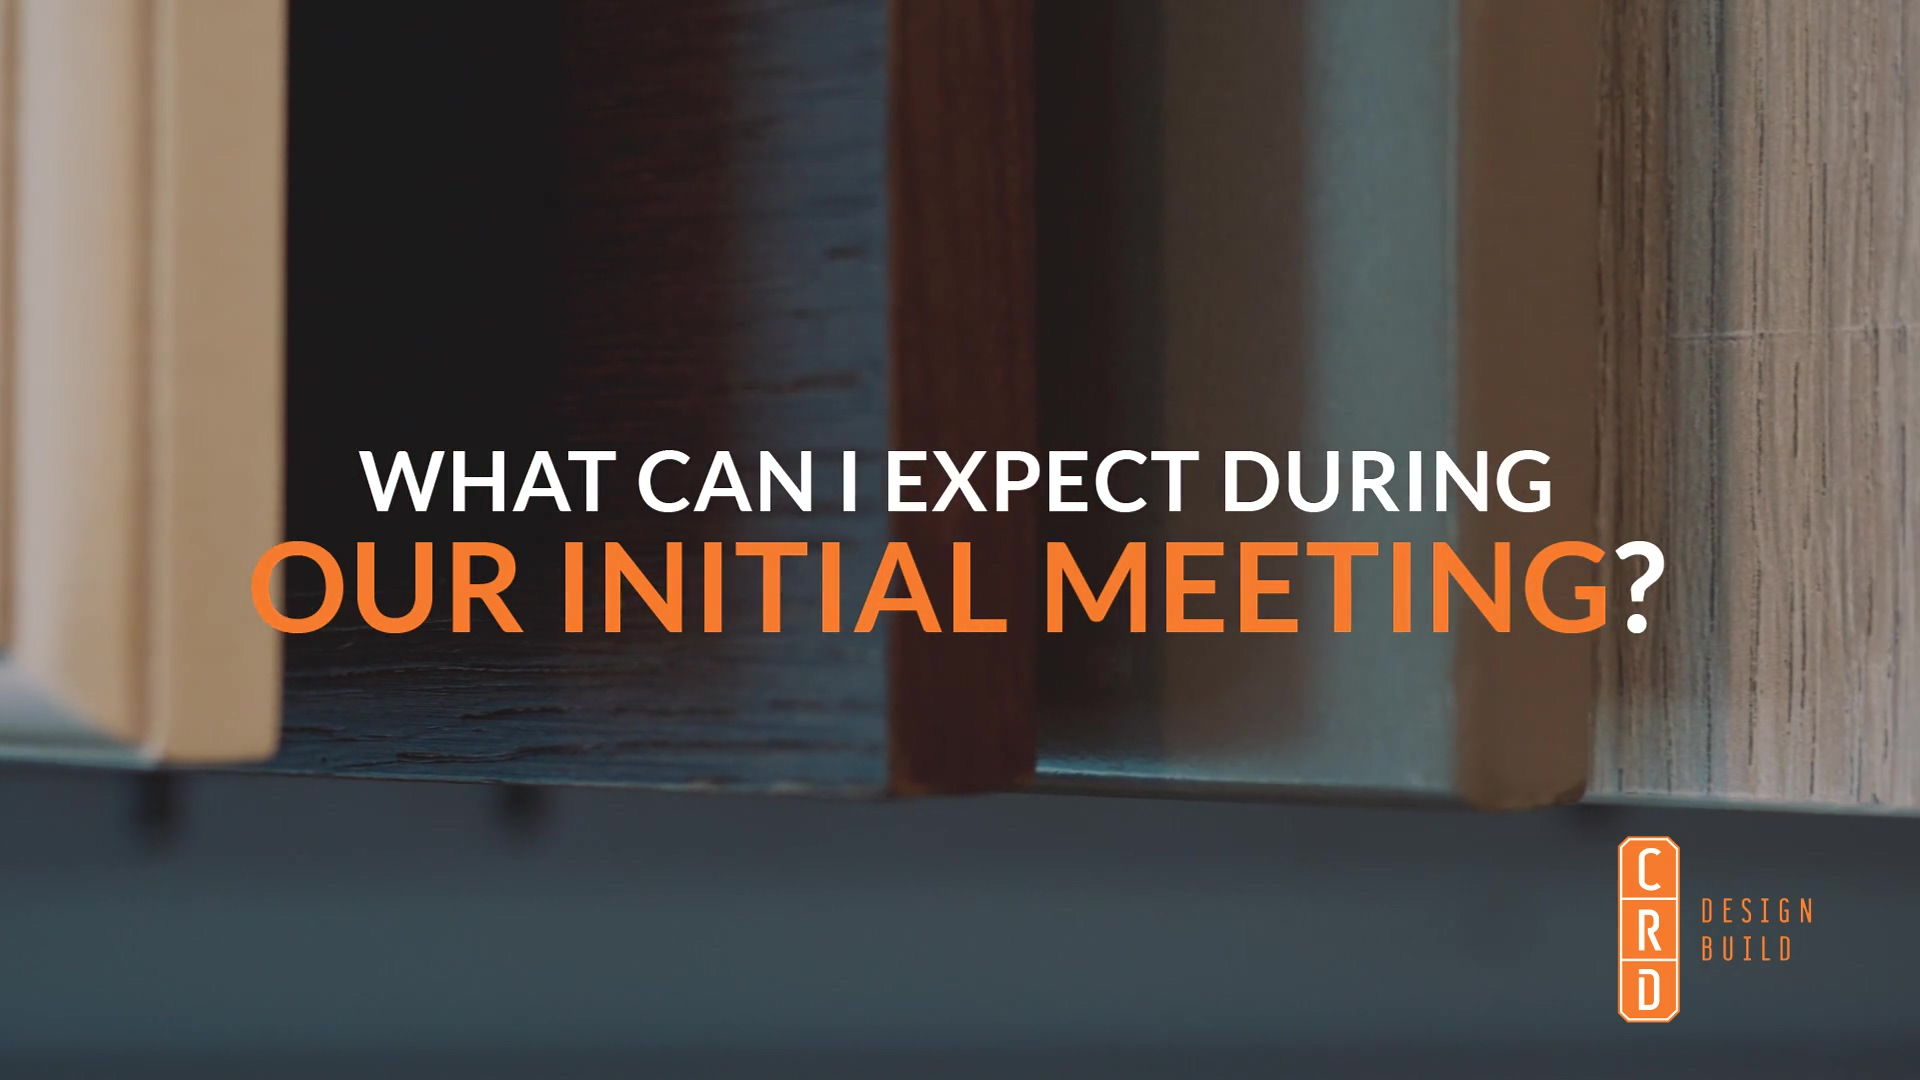 CRD - What can I expect during our initial meeting